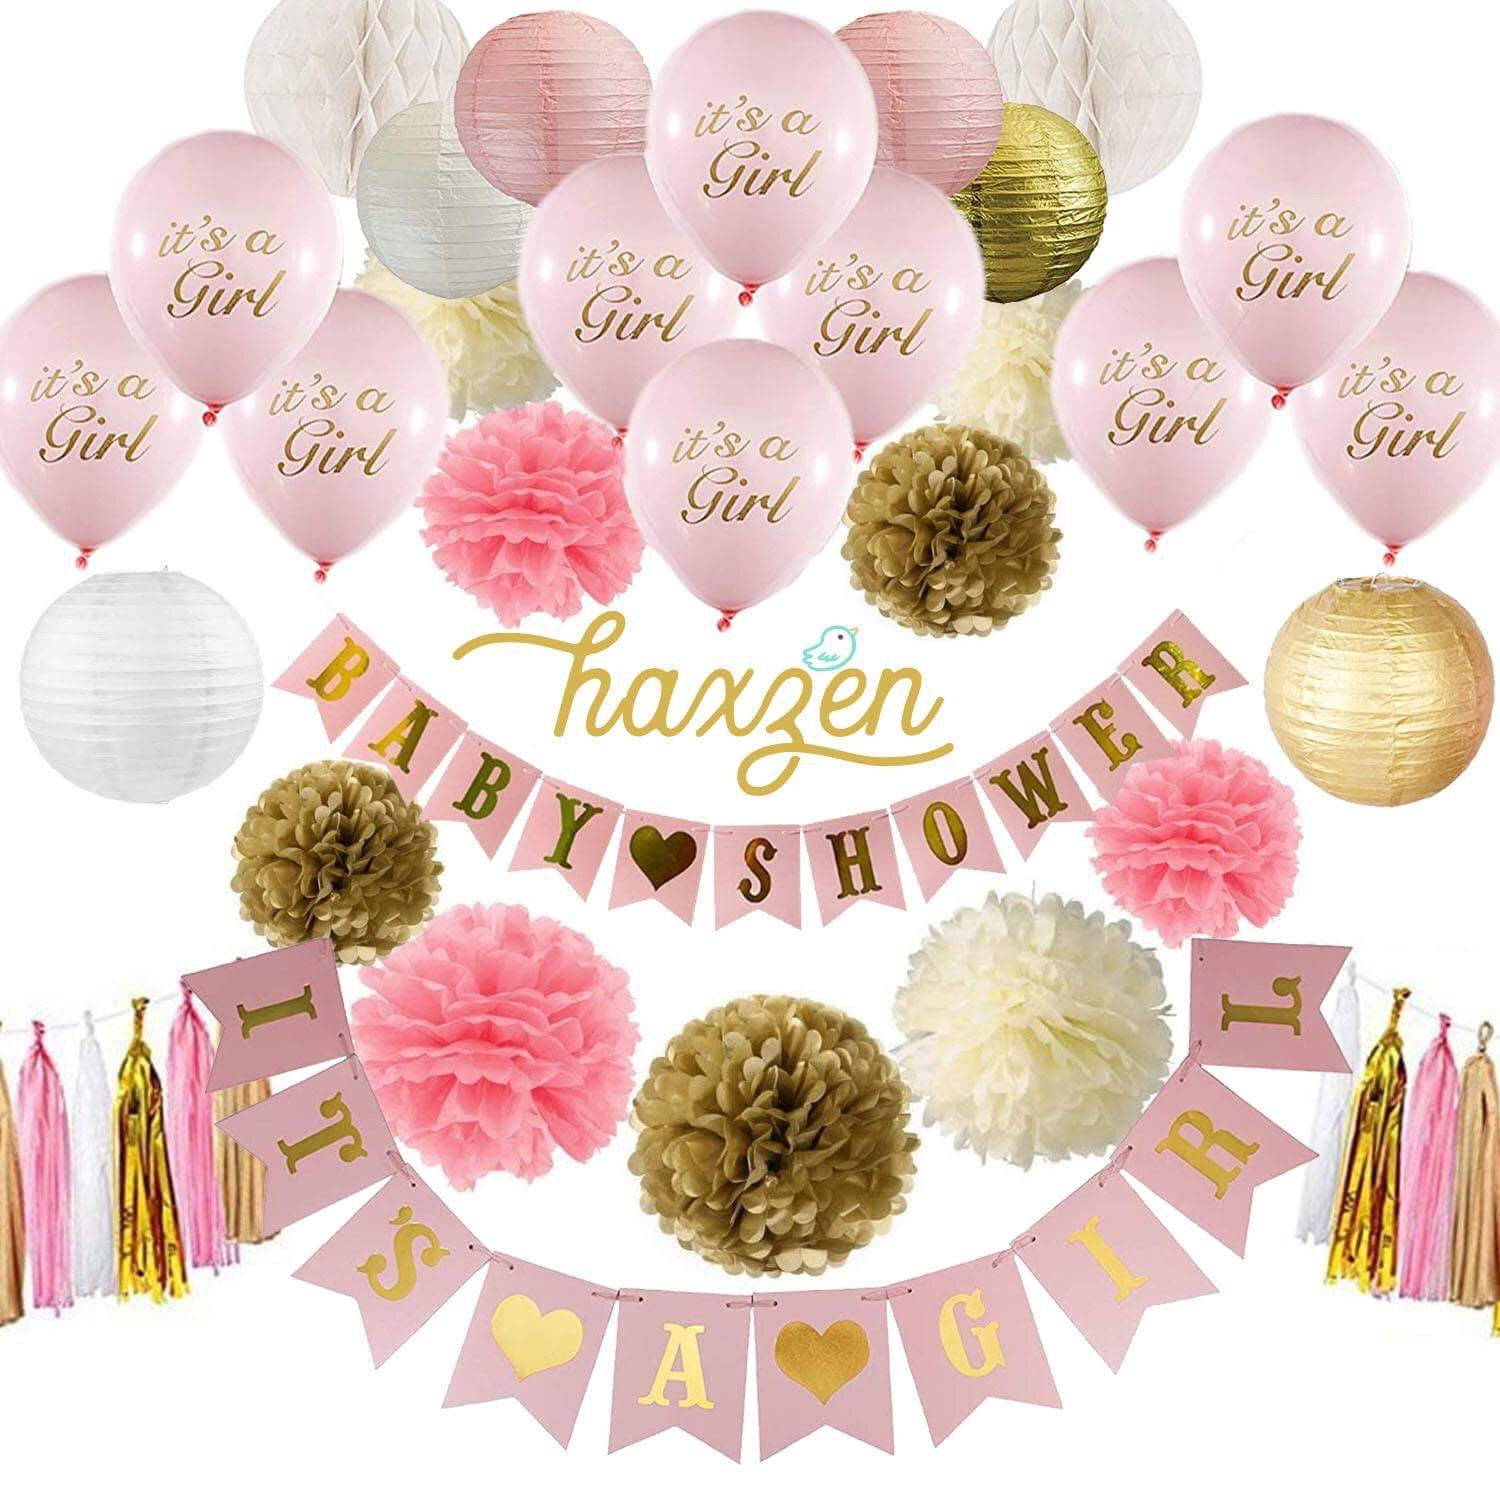 Baby Shower Decorations Pink Gold and White for Baby Girl - It's a Girl & Baby Shower Banner with 10 Balloons Pom Poms Paper Lanterns Honeycomb Balls Tassel  Set Party Decorations by Haxzen